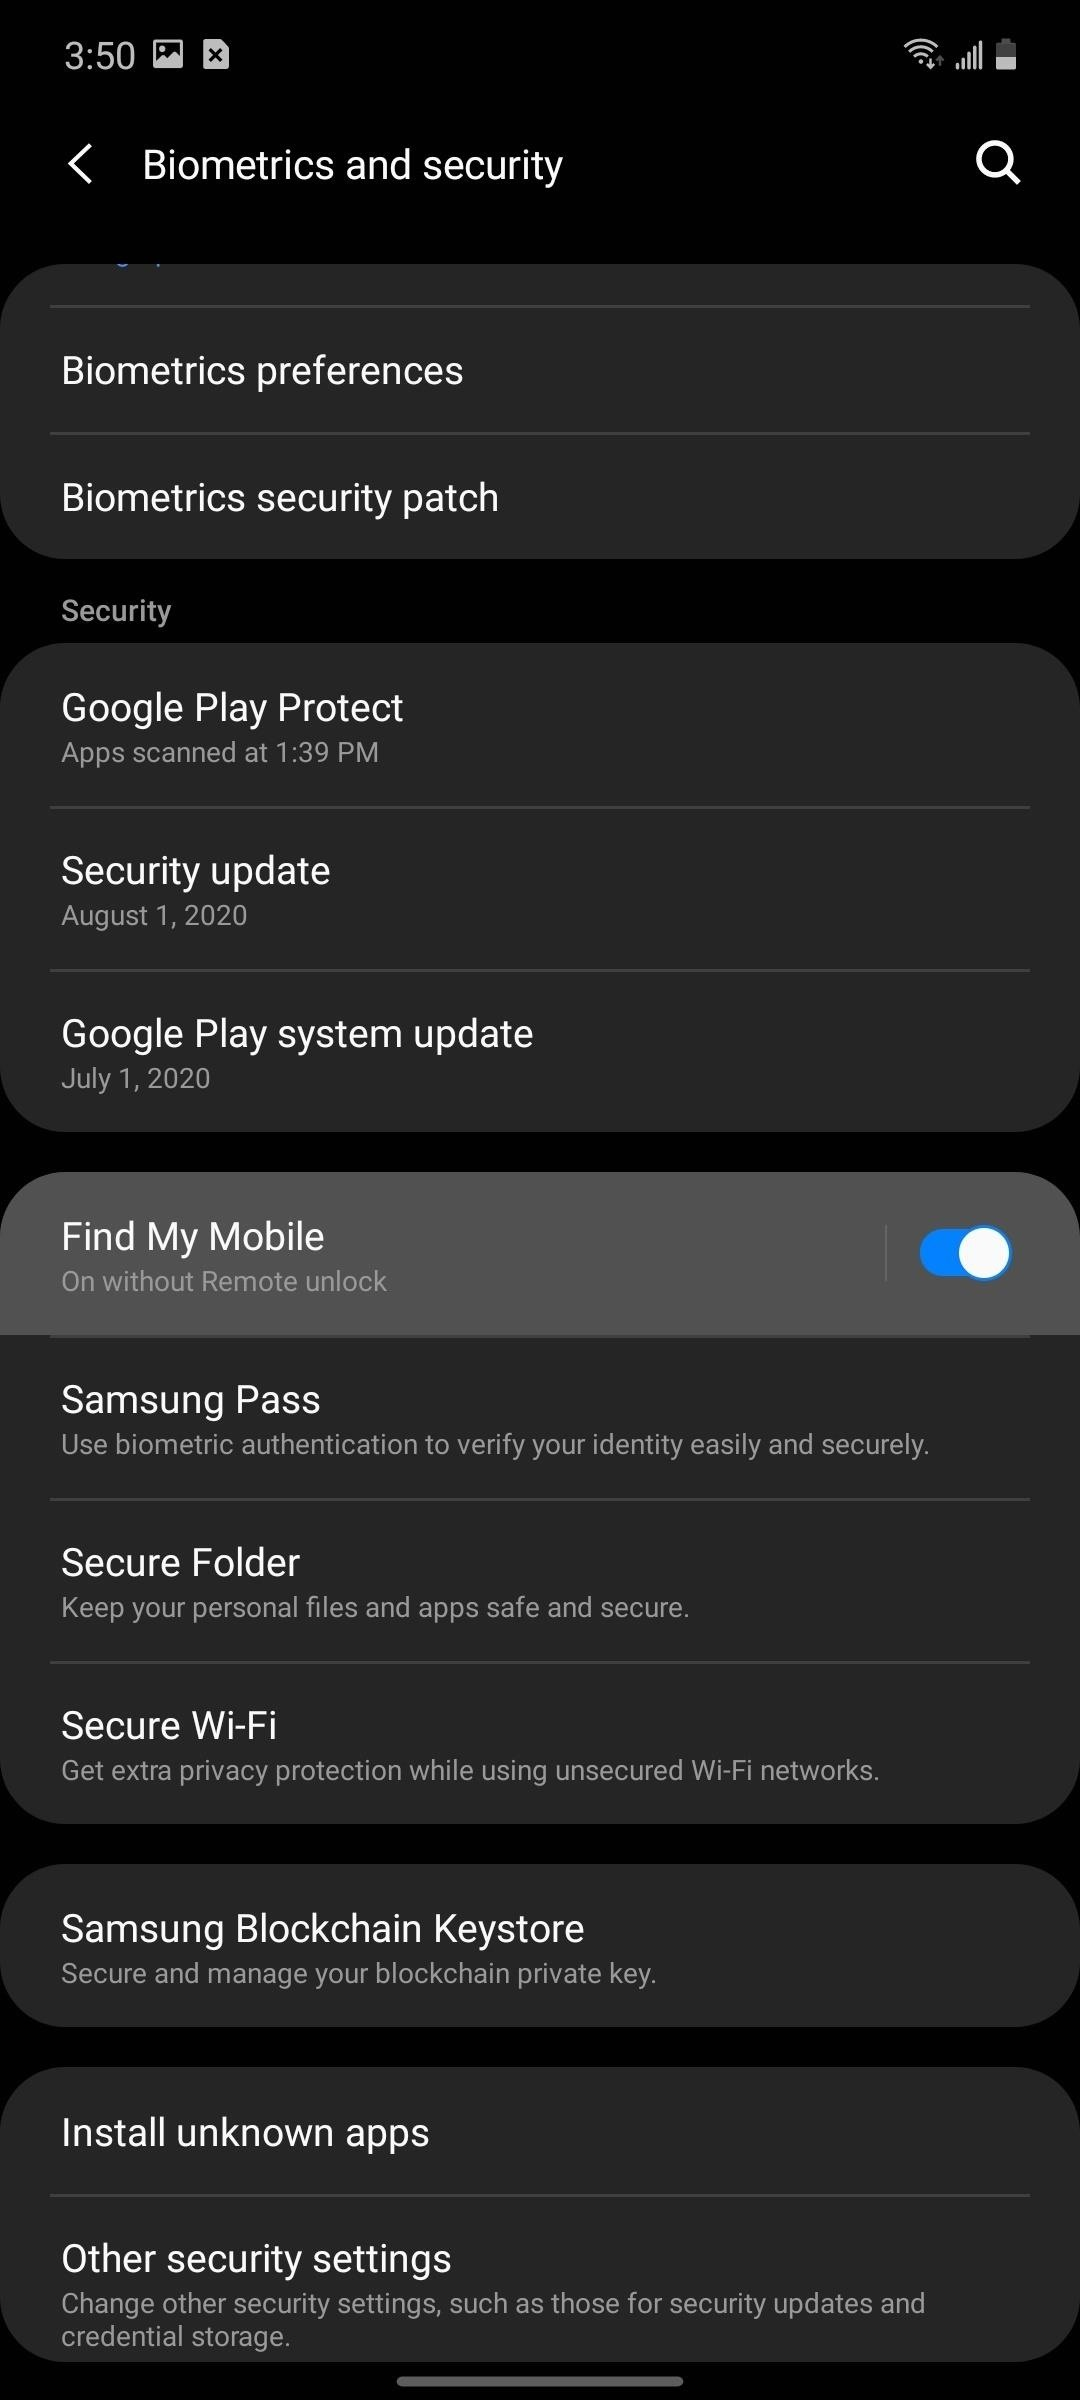 13 Galaxy Note 20 Security & Privacy Settings You Should Double Check Right Away